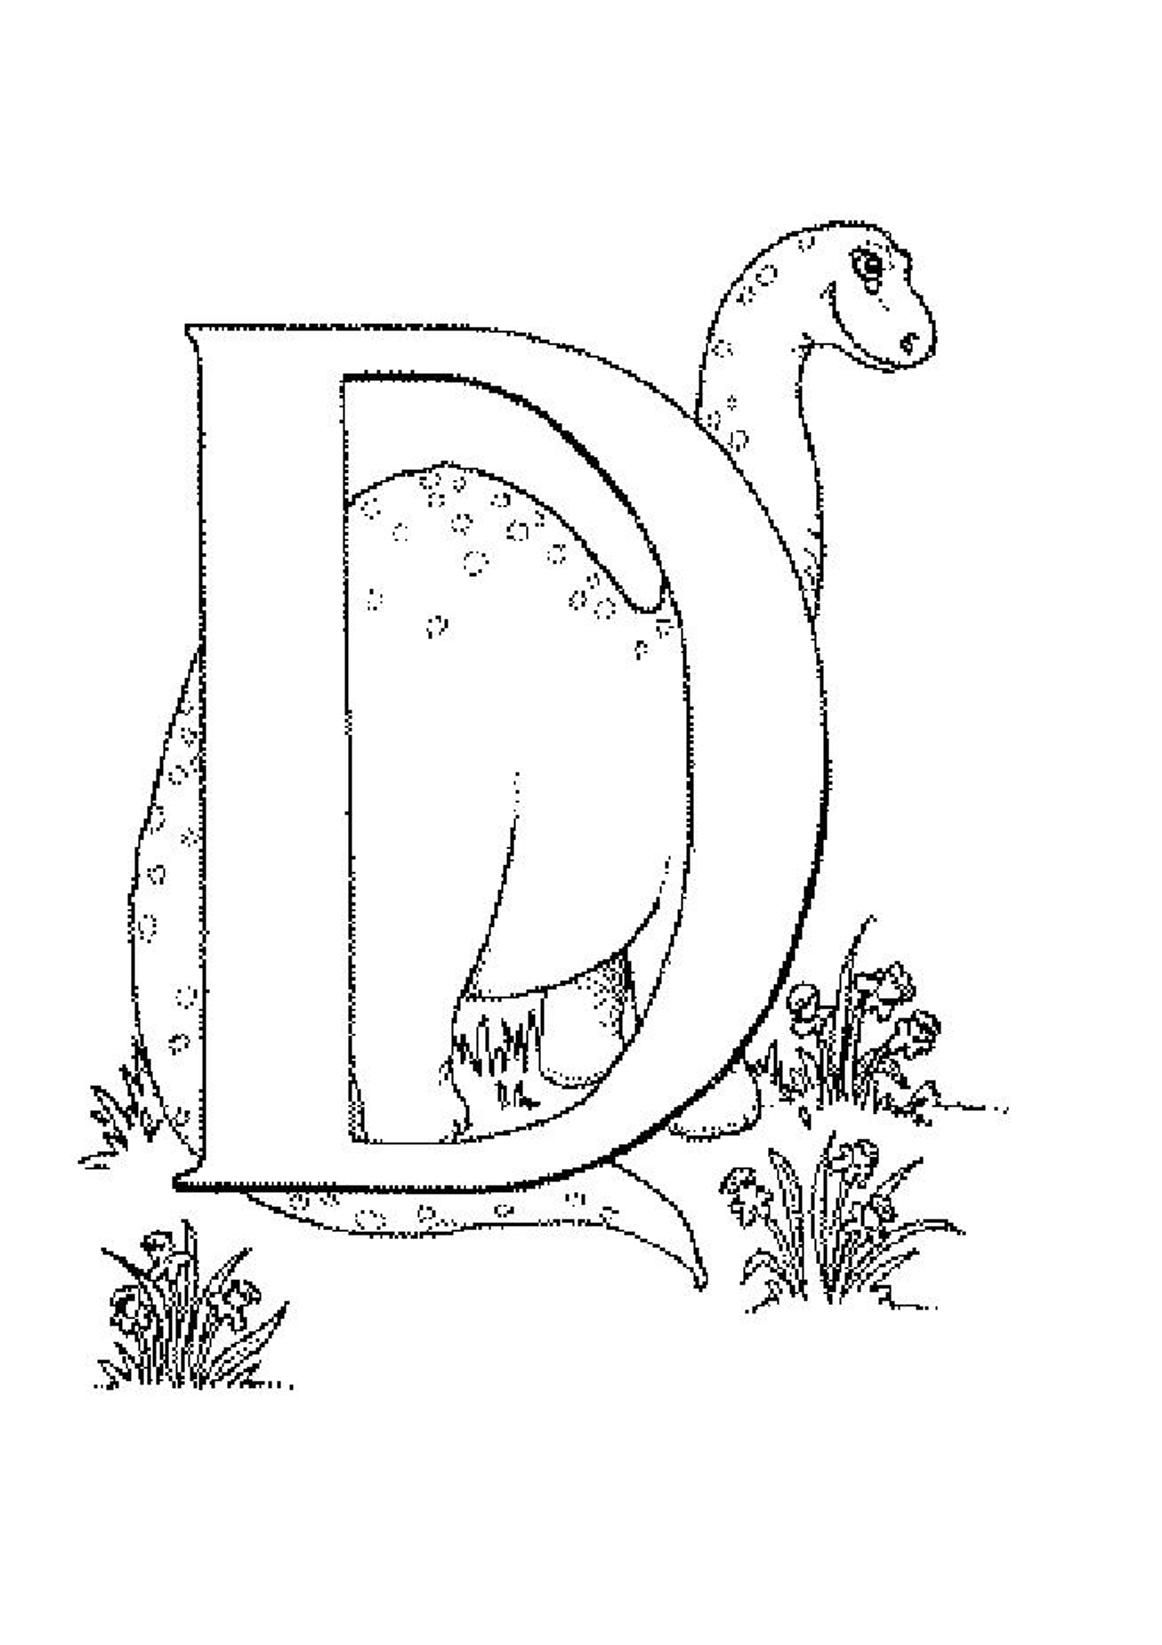 d is for dragon coloring page dds 40th anniversary words to celebrate part two coloring is for dragon page d